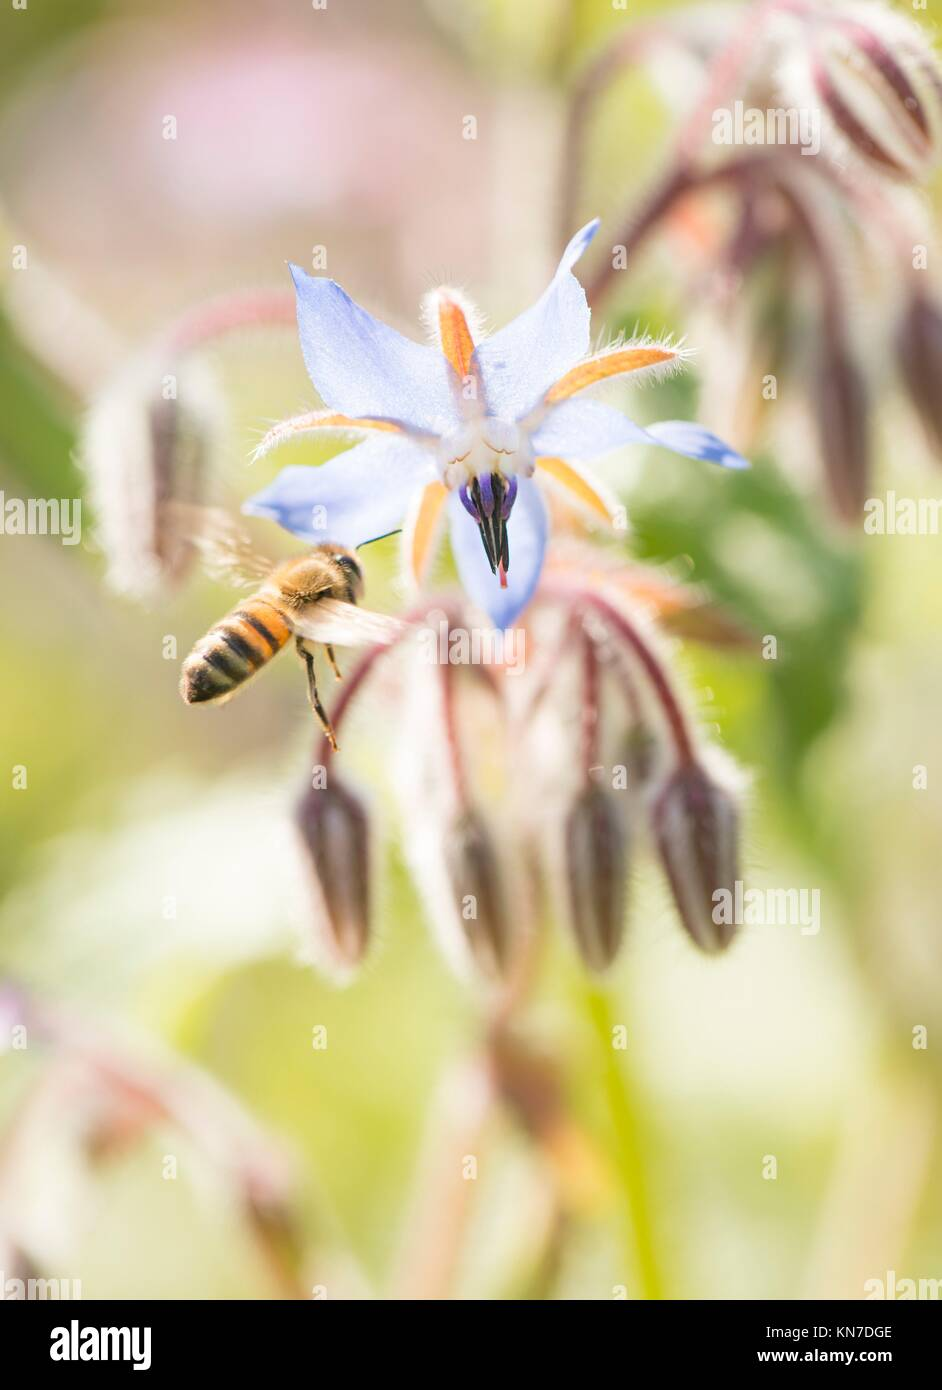 Bee close up. Beautiful summer nature detail with pollination of flower in garden. Concept of making honey, ecosystem - Stock Image